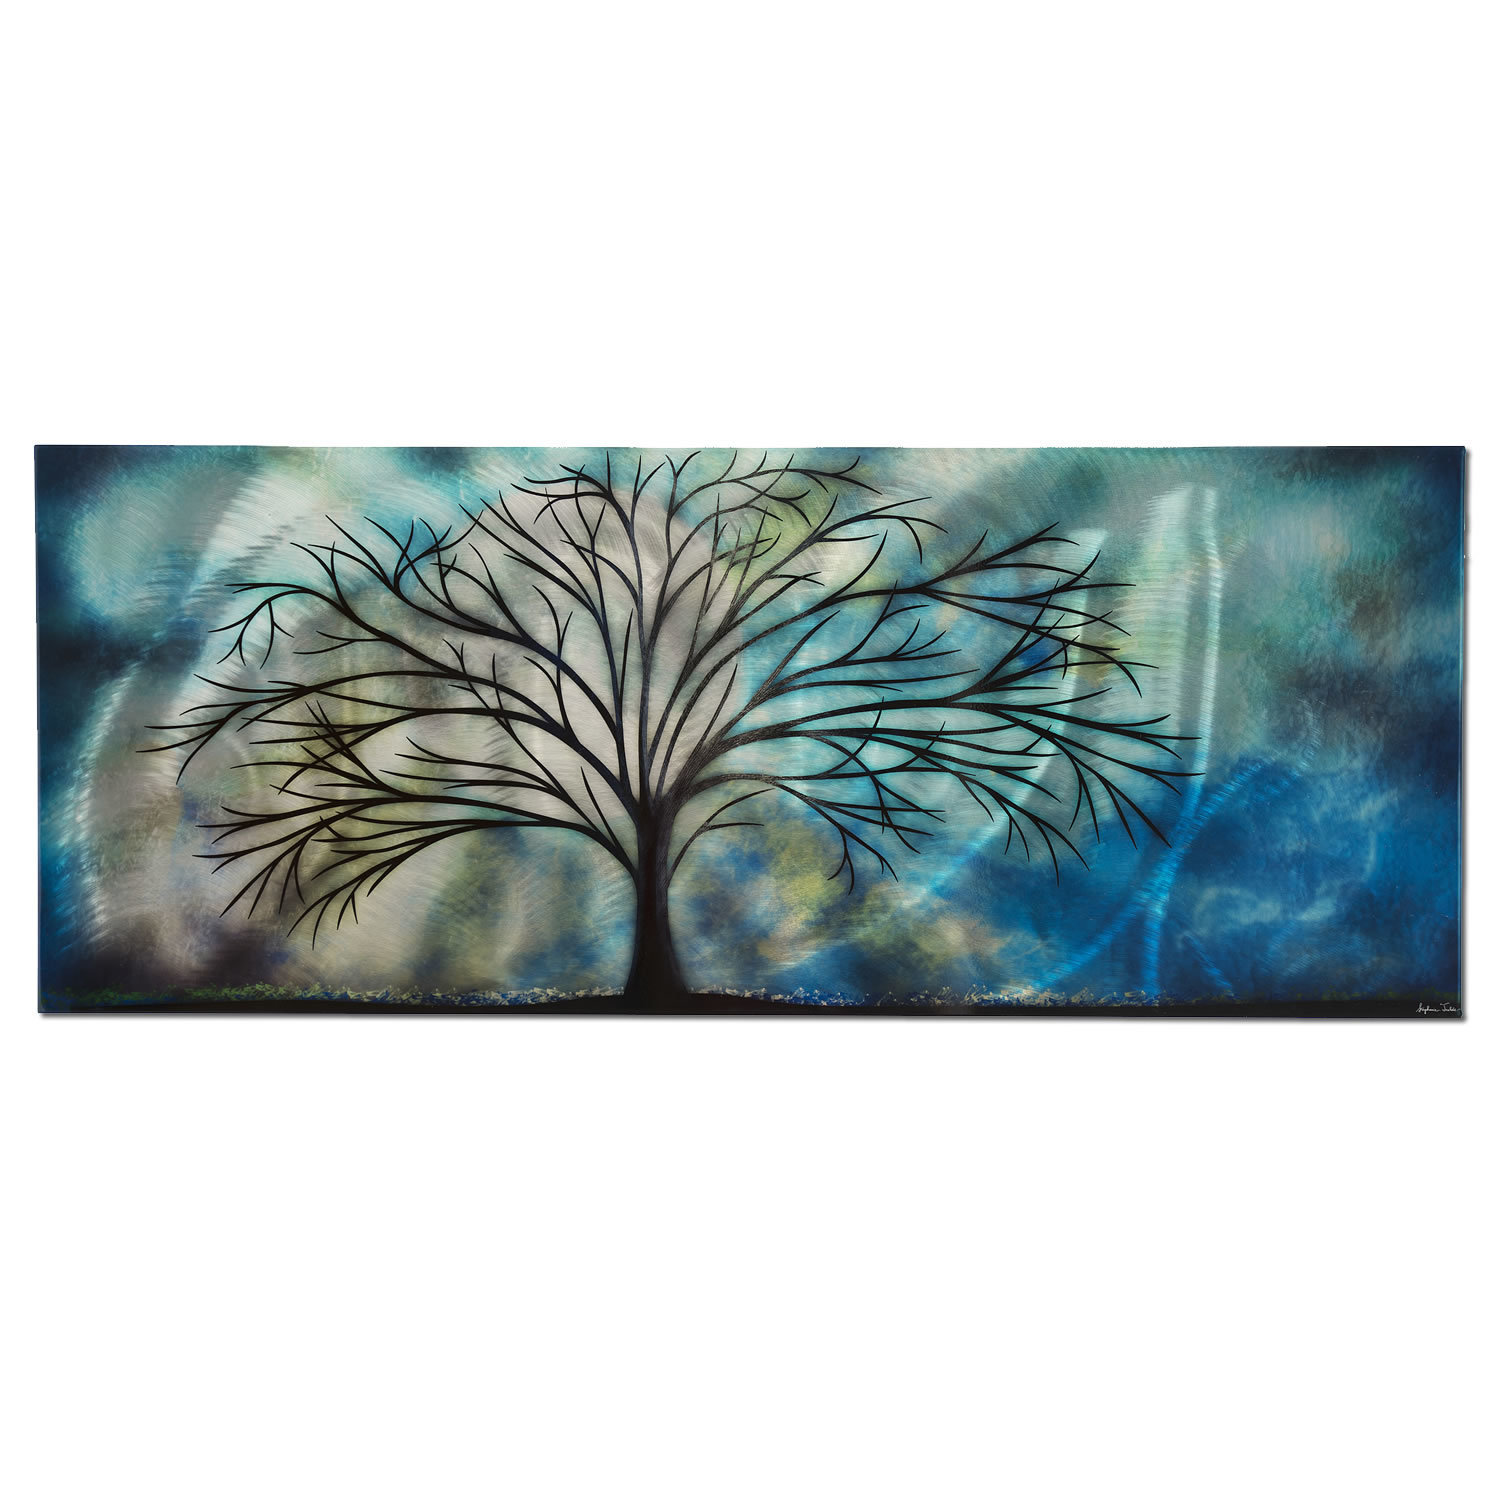 Metal Art Studio Wall Vanitymoonlight Serenade Vanity Cool Colors Tree Wall Sculpture Meta Contemporary